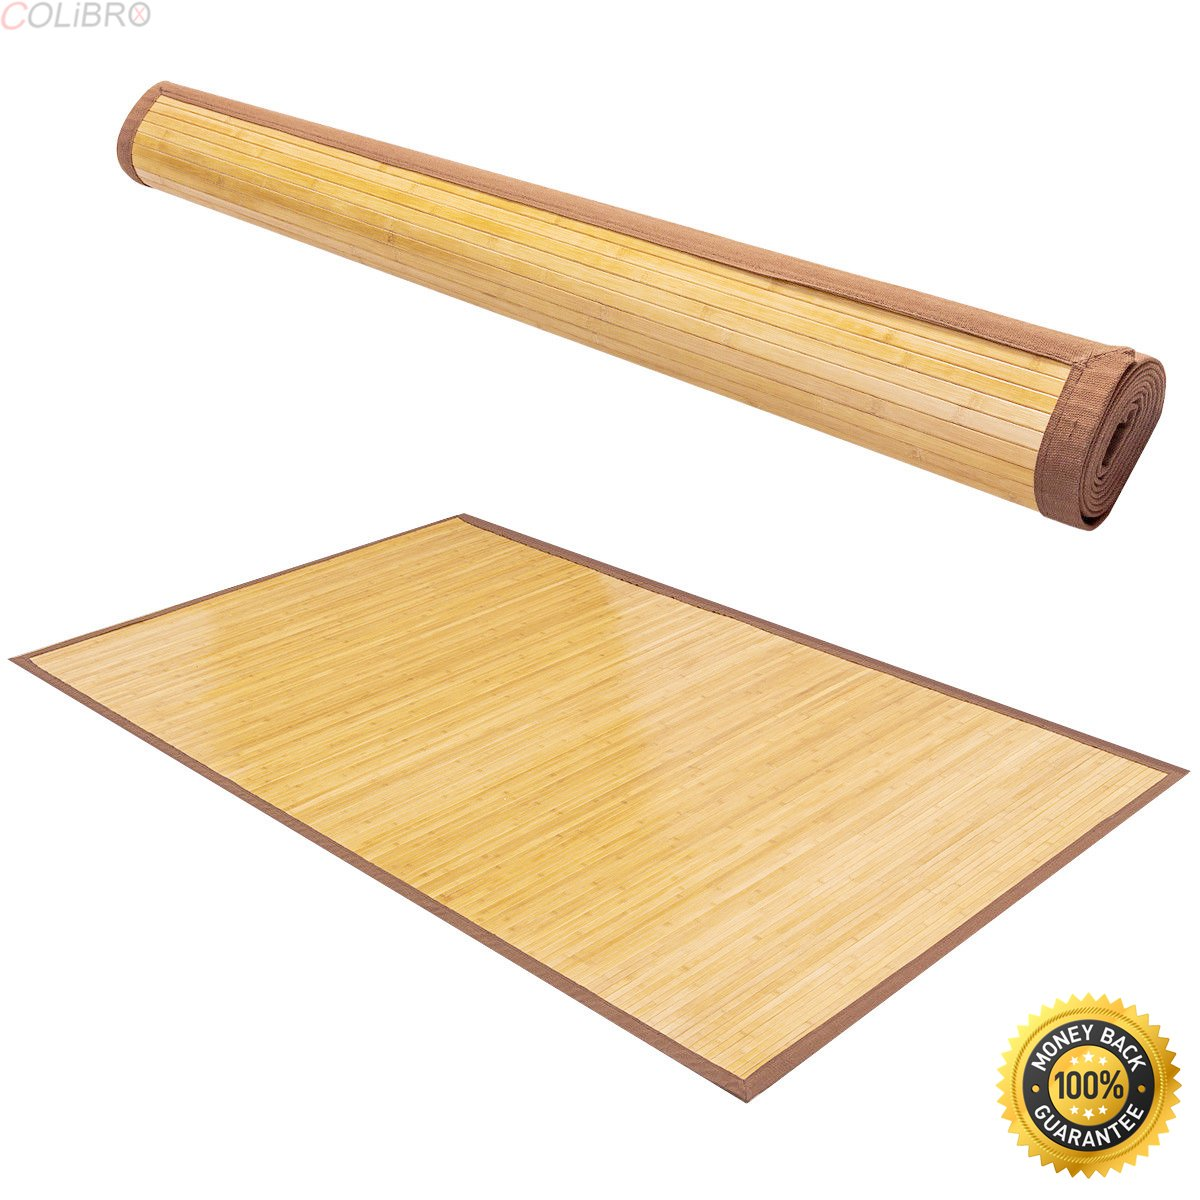 COLIBROX--5' X 8' Bamboo Area Rug Floor Carpet Natural Bamboo Wood Indoor Outdoor New,area rugs home depot,Bamboo Area Rug ,amazon area rugs 5x8,home depot rug sale tent